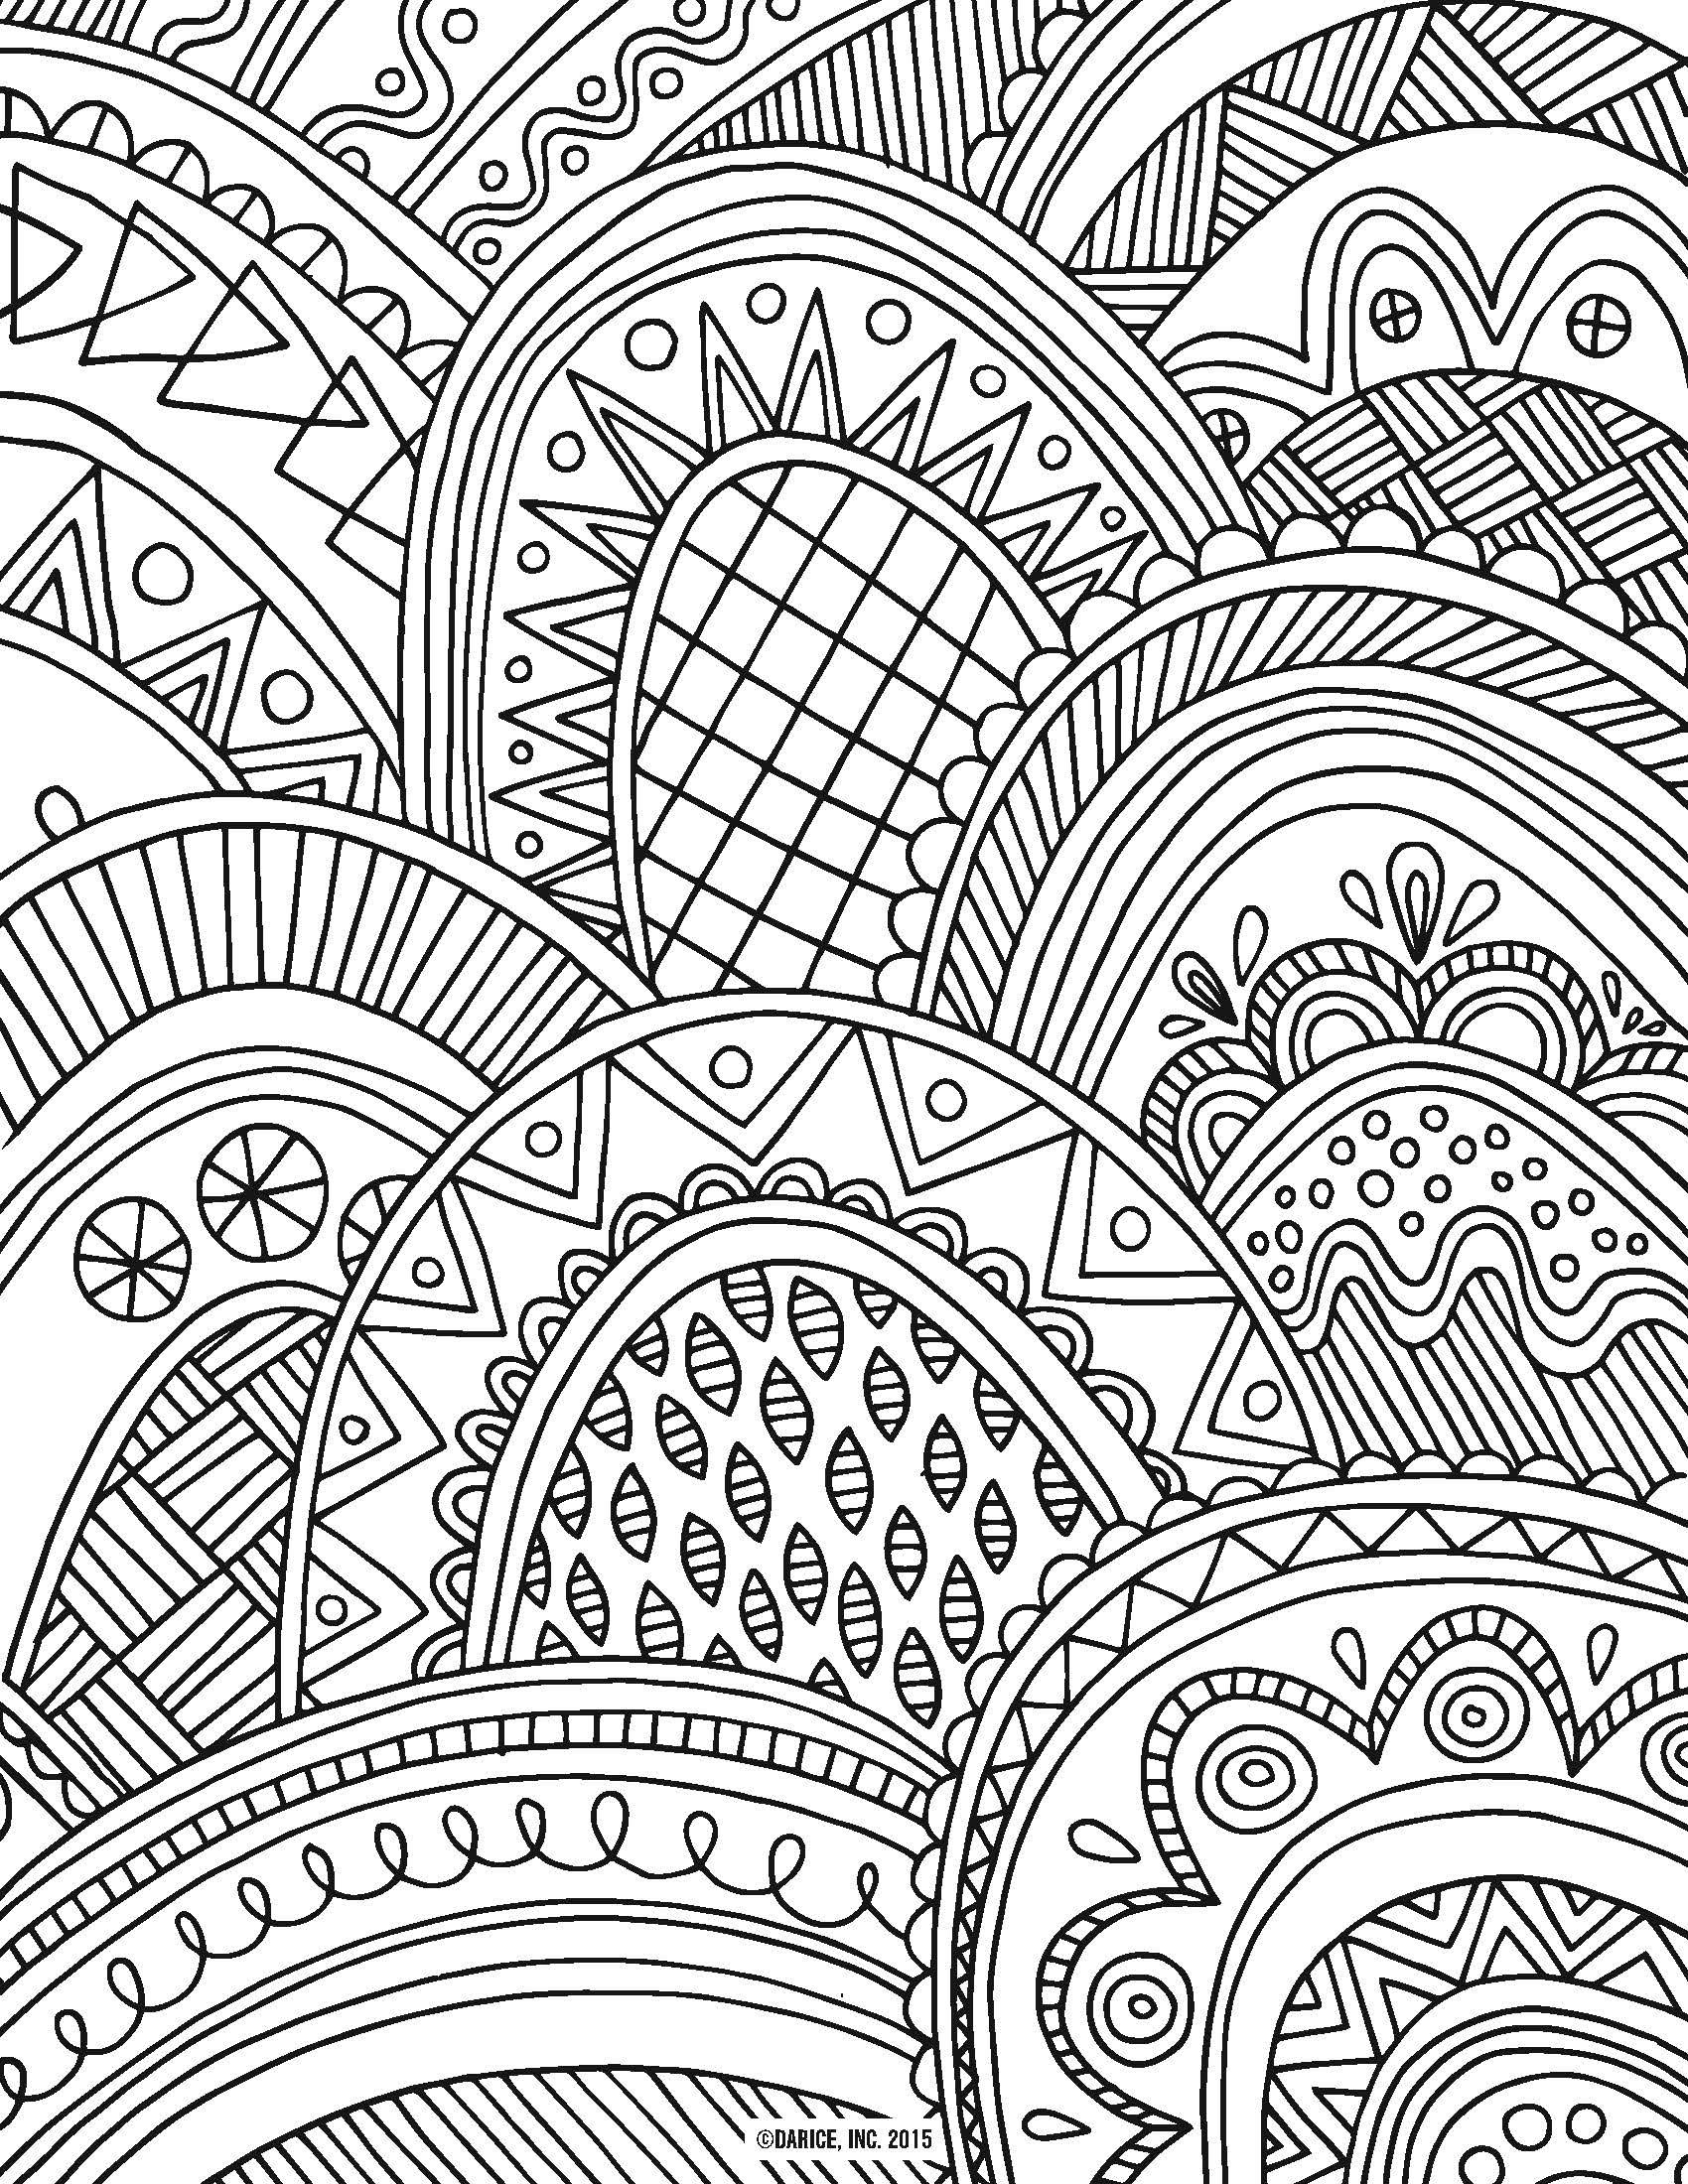 Try Out The Adult Coloring Book Trend For Yourself With Our 9 Free Adult Coloring Pages See Our